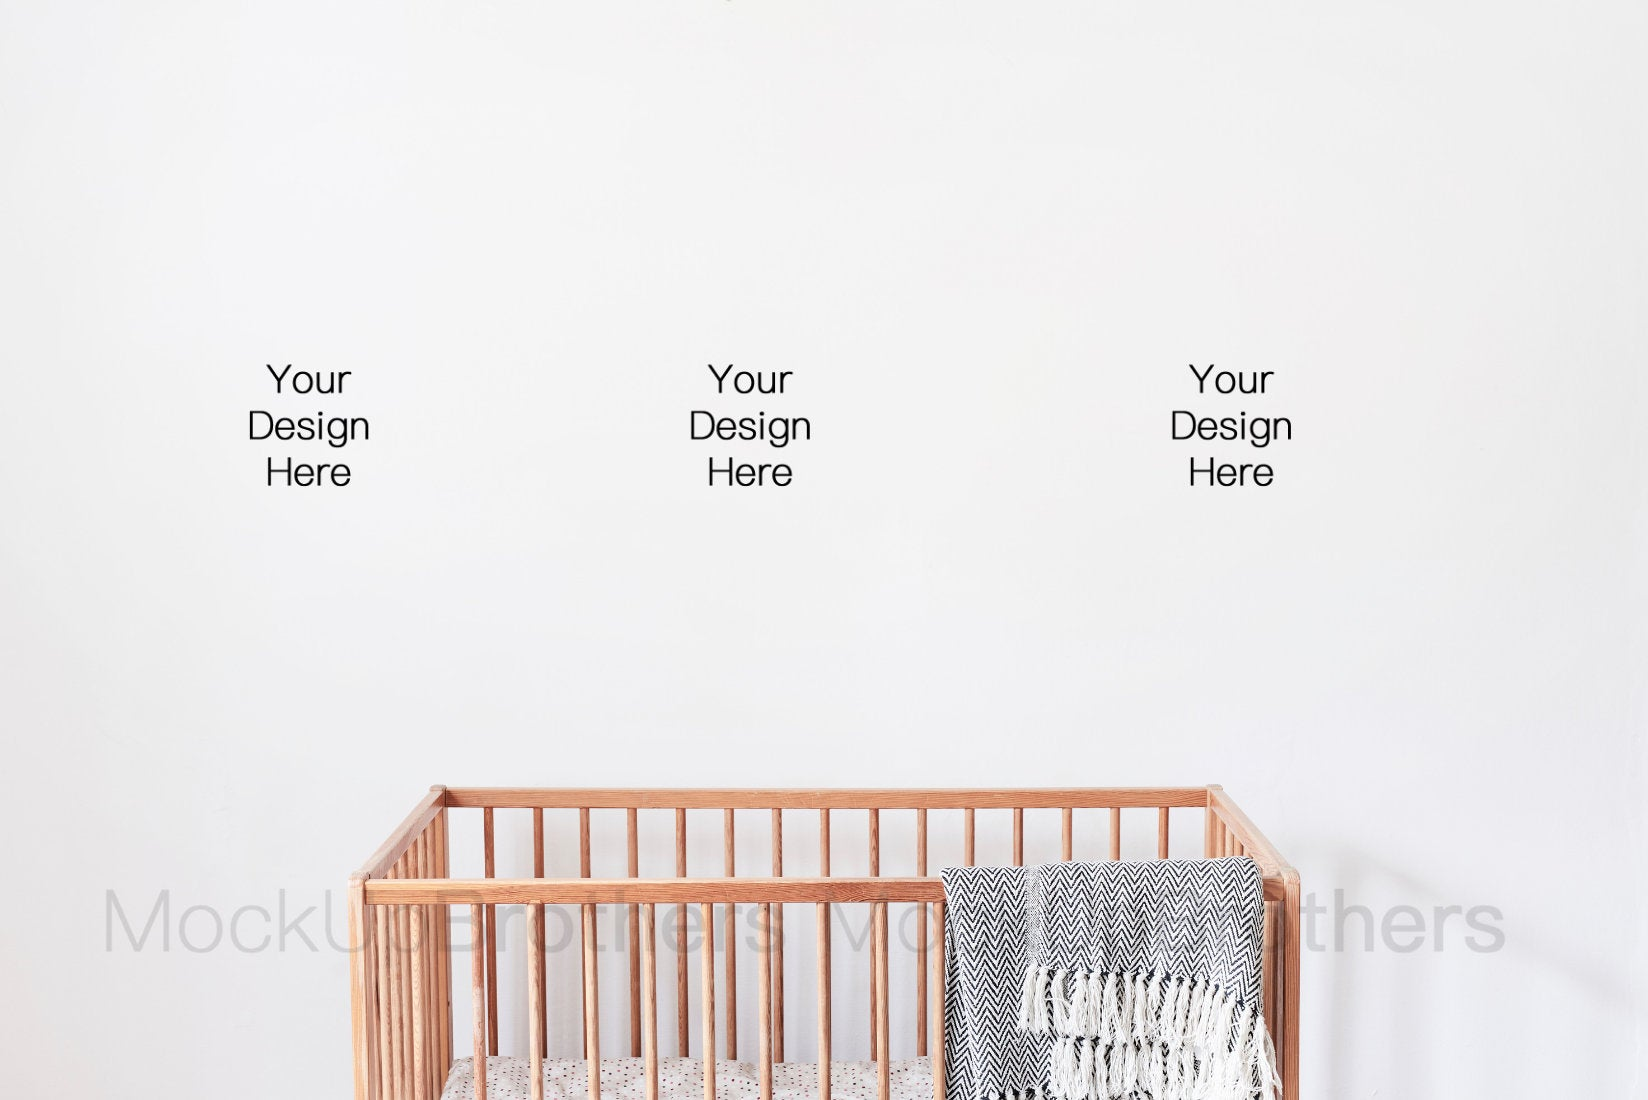 Toddler room mockup with white wall by mockupbrothers